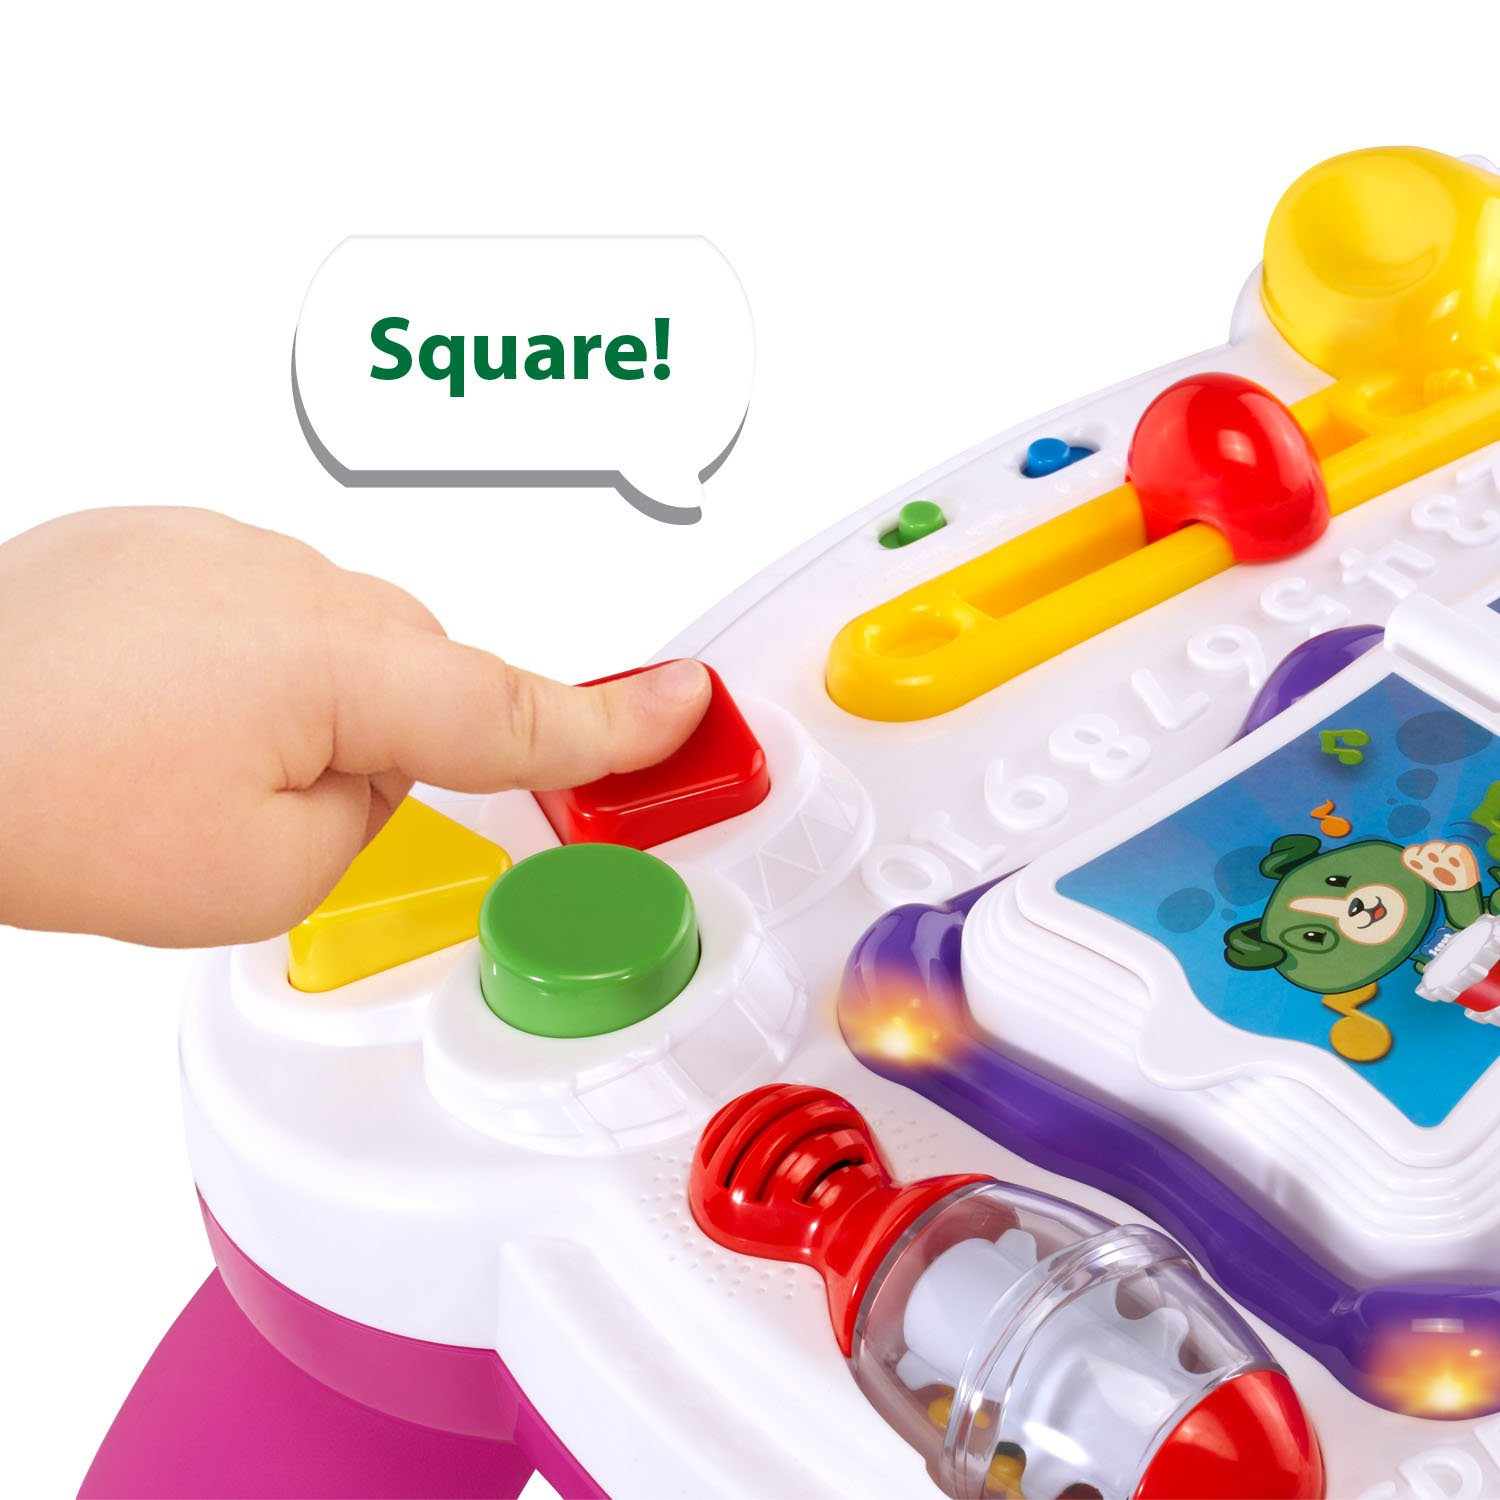 LeapFrog Learn and Groove Musical Table Activity Center Amazon Exclusive, Pink by LeapFrog (Image #4)